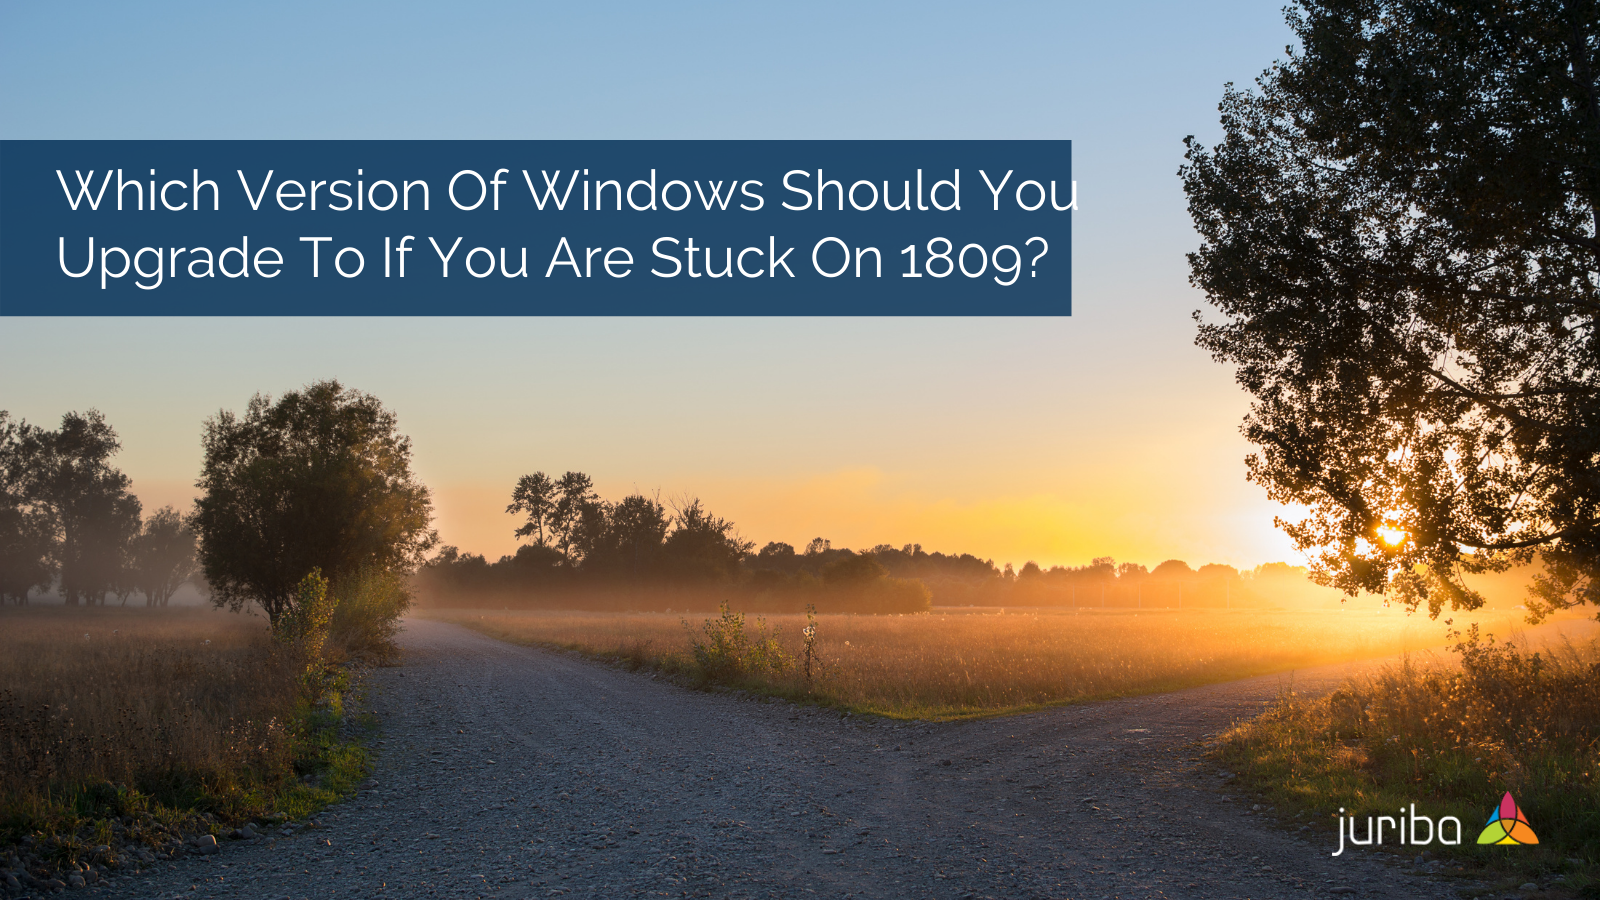 Which Version Of Windows Should You Upgrade To If You Are Stuck On 1809